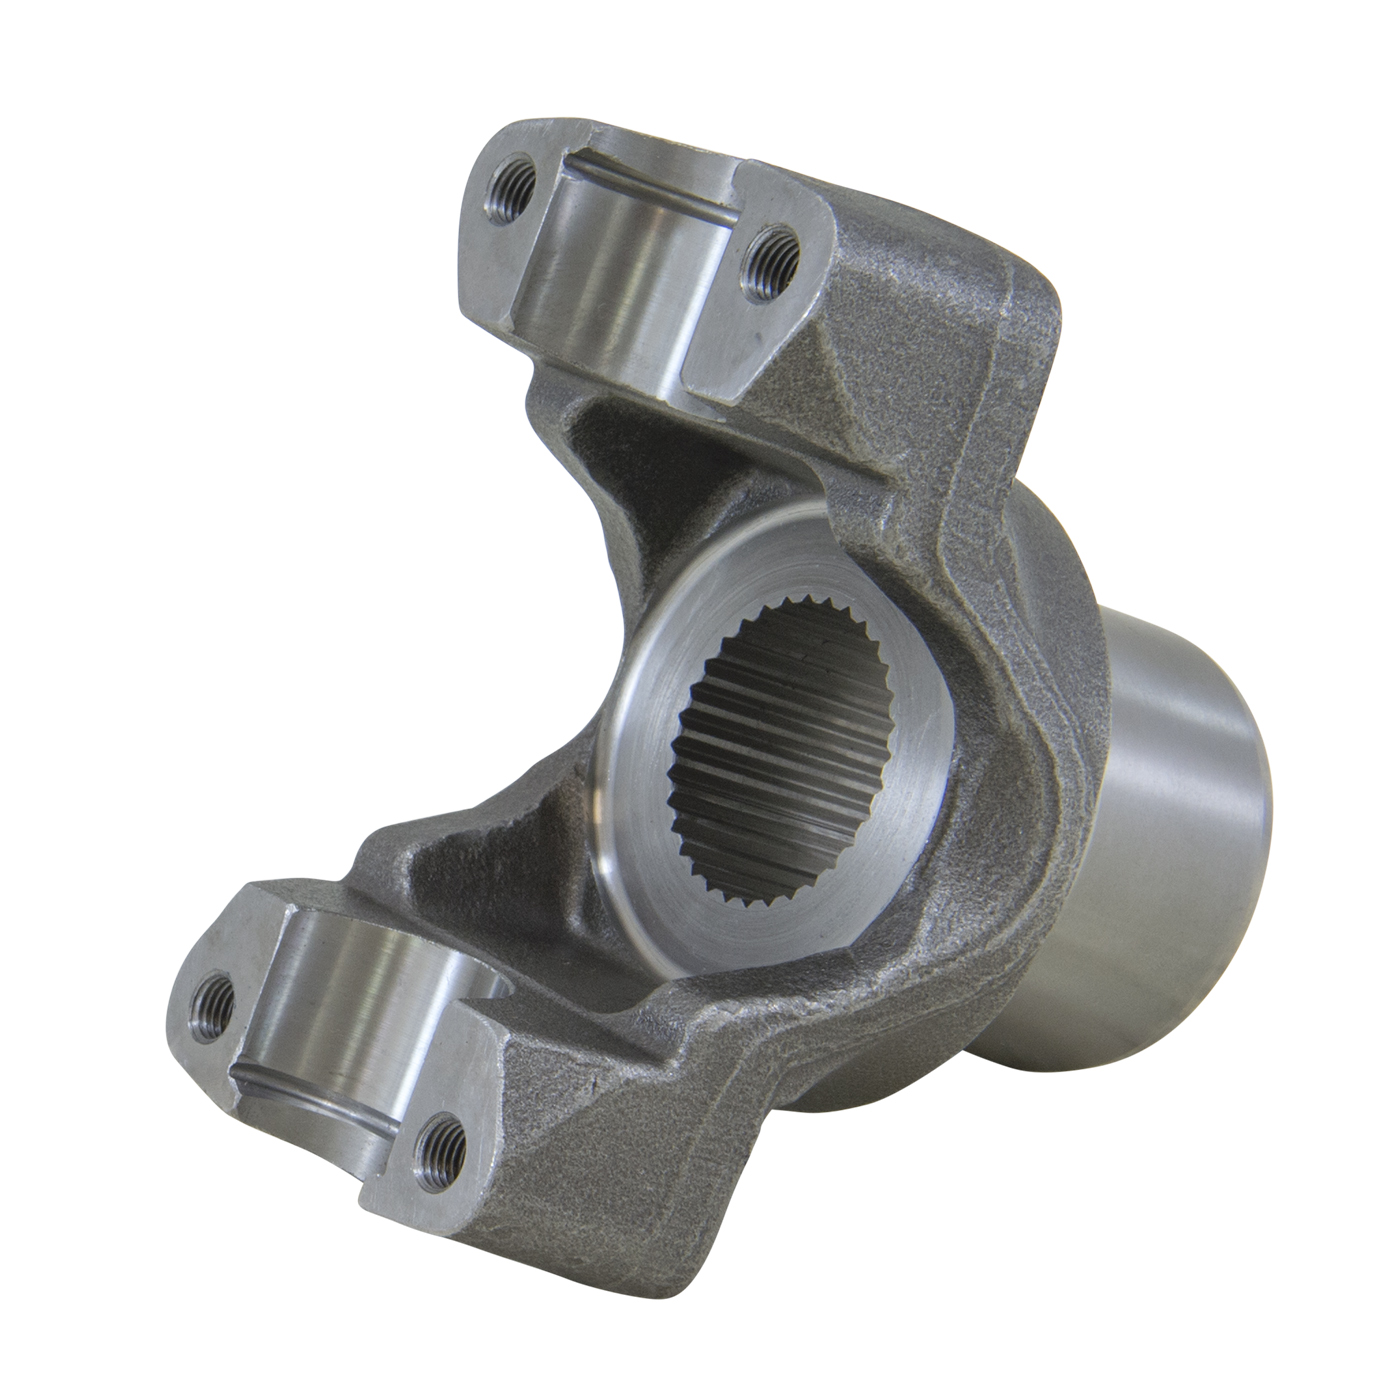 YY NP205-141032 - Yukon new process 205 T/case yoke with 32 spline and a 1410 U/Joint size